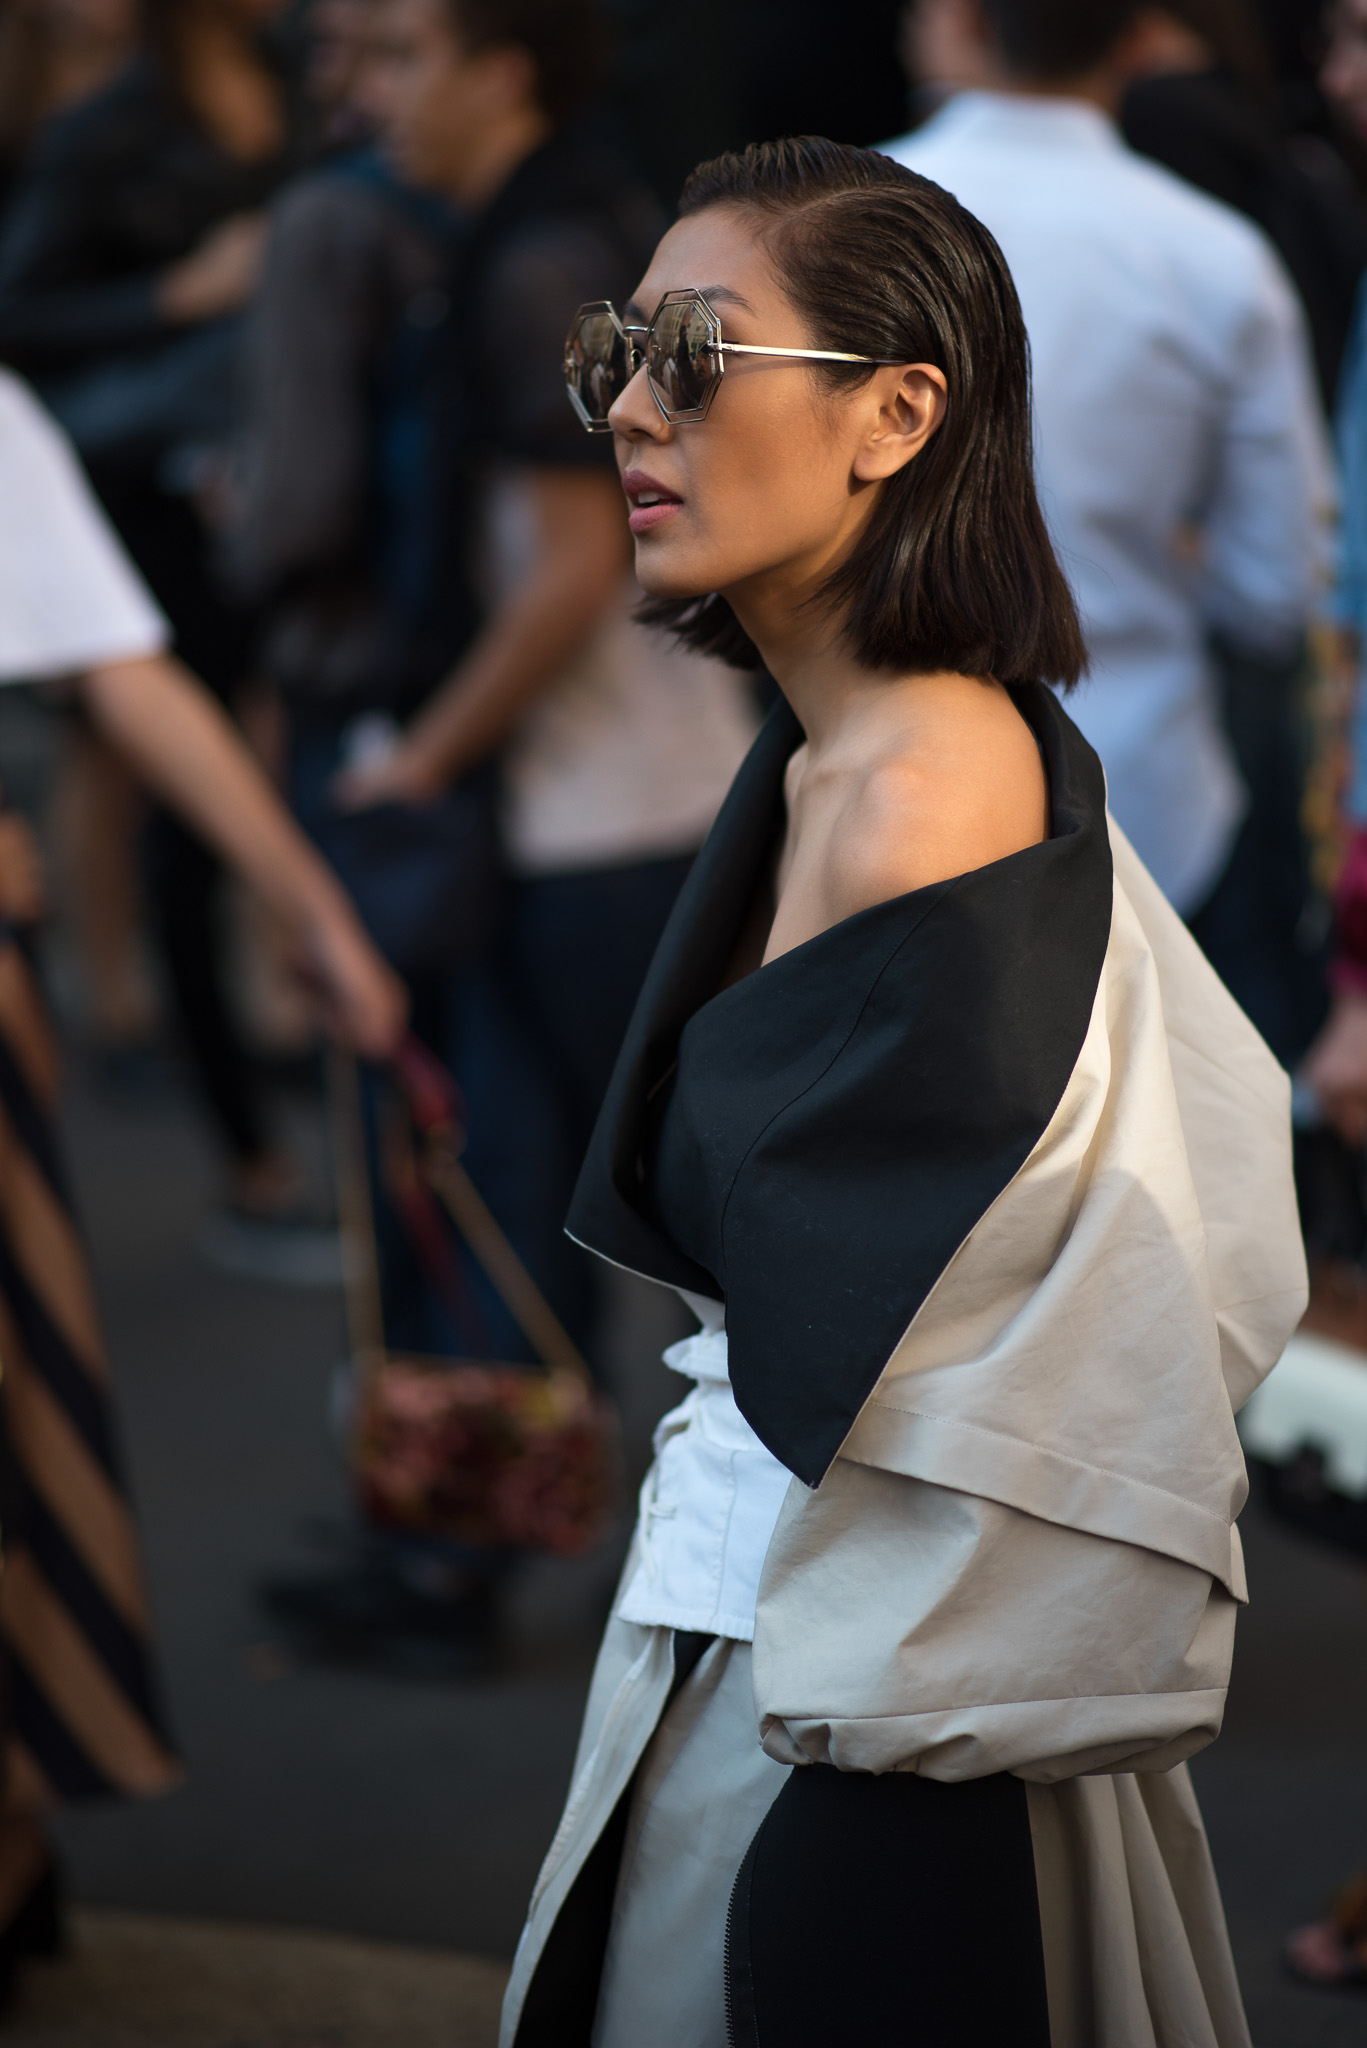 liz-uy_-salvatore-ferragamo_milan-fashion-week_sept-2016_photography-annika-lagerqvist_www-annikasomething-com-2